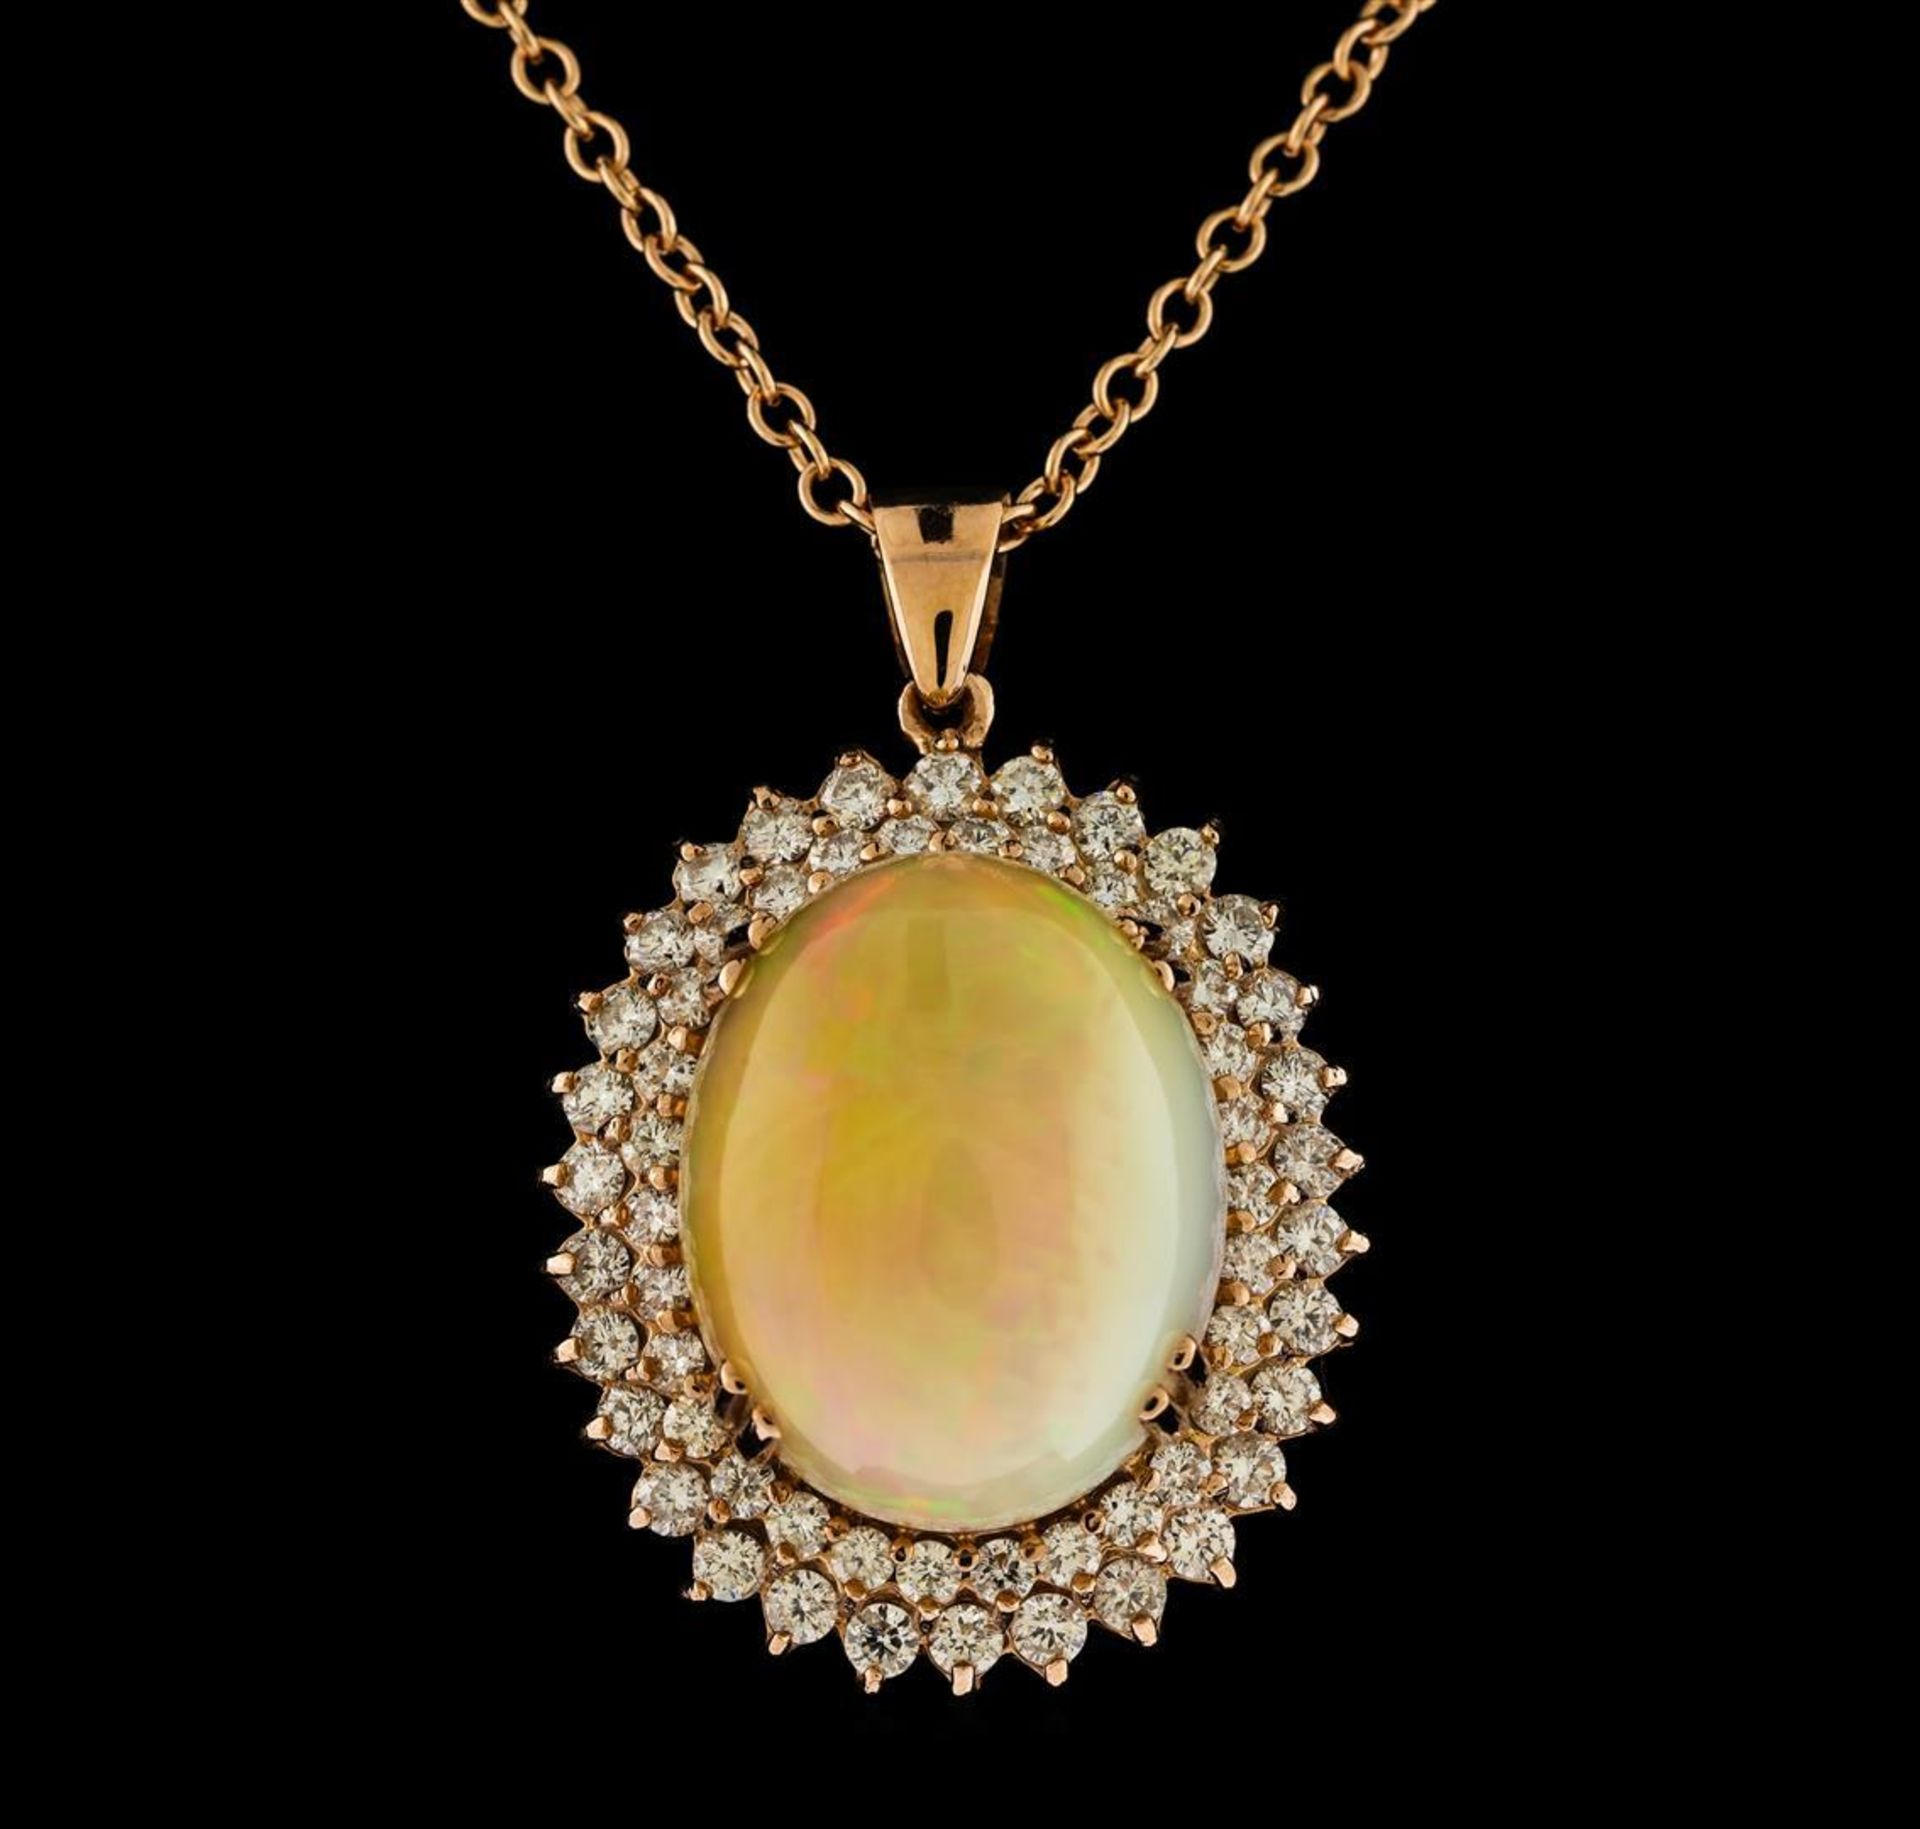 26.39 ctw Opal and Diamond Pendant With Chain - 14KT Rose Gold - Image 2 of 3